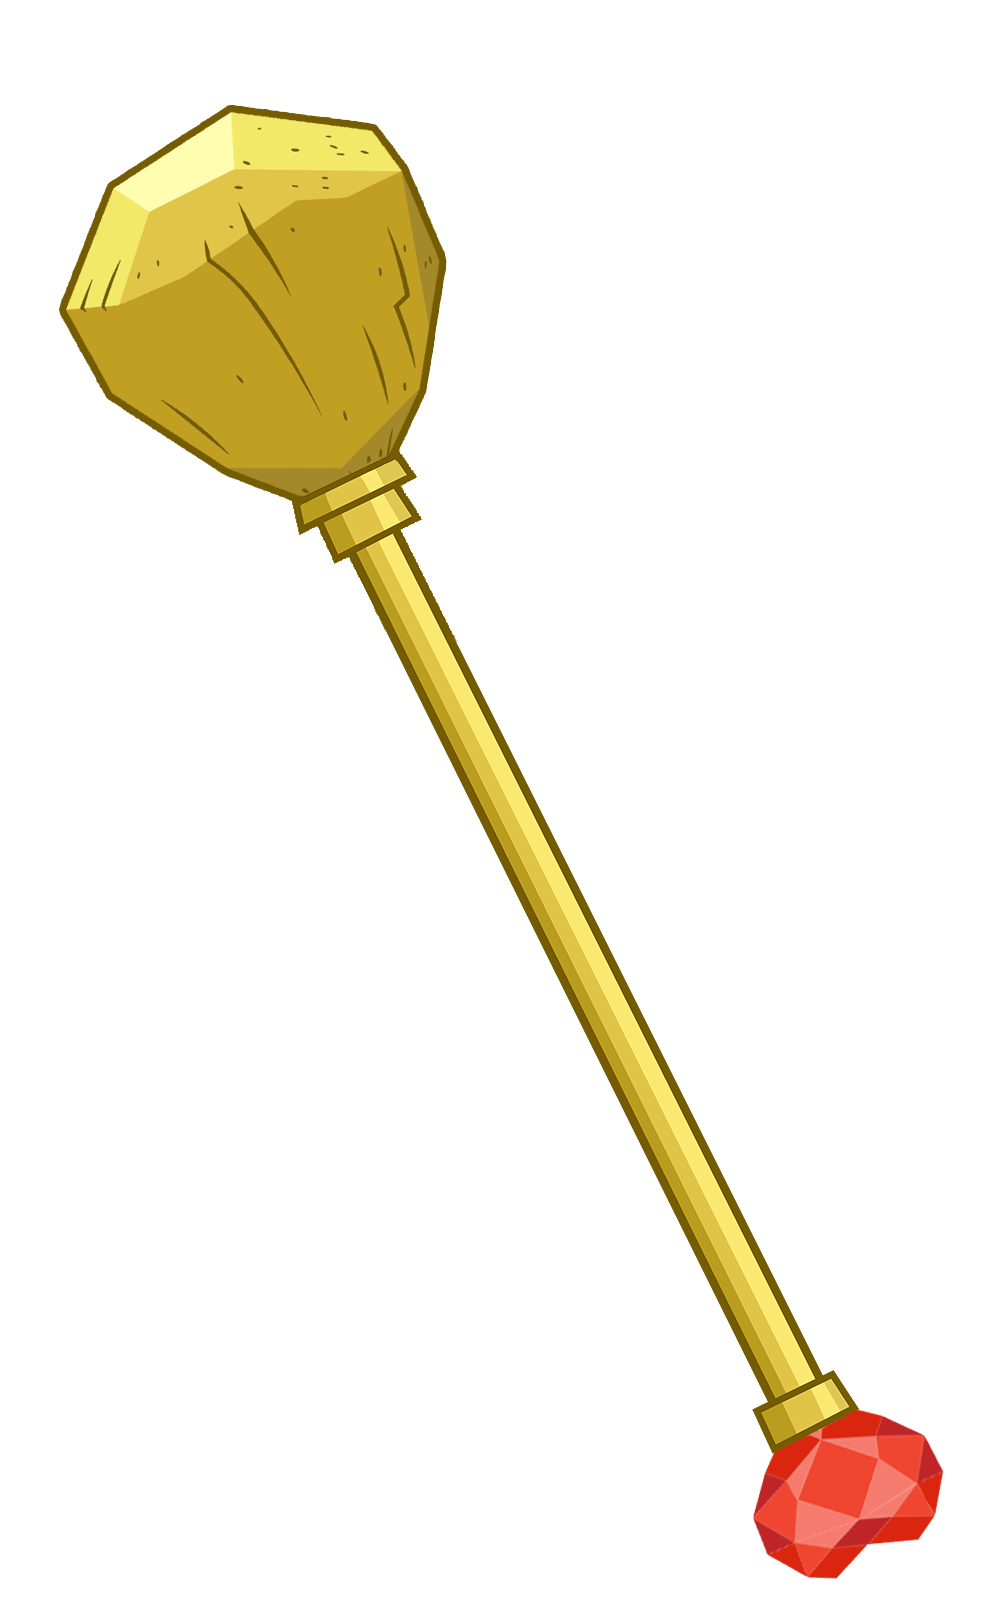 King clipart scepter. Tom the cane twilight